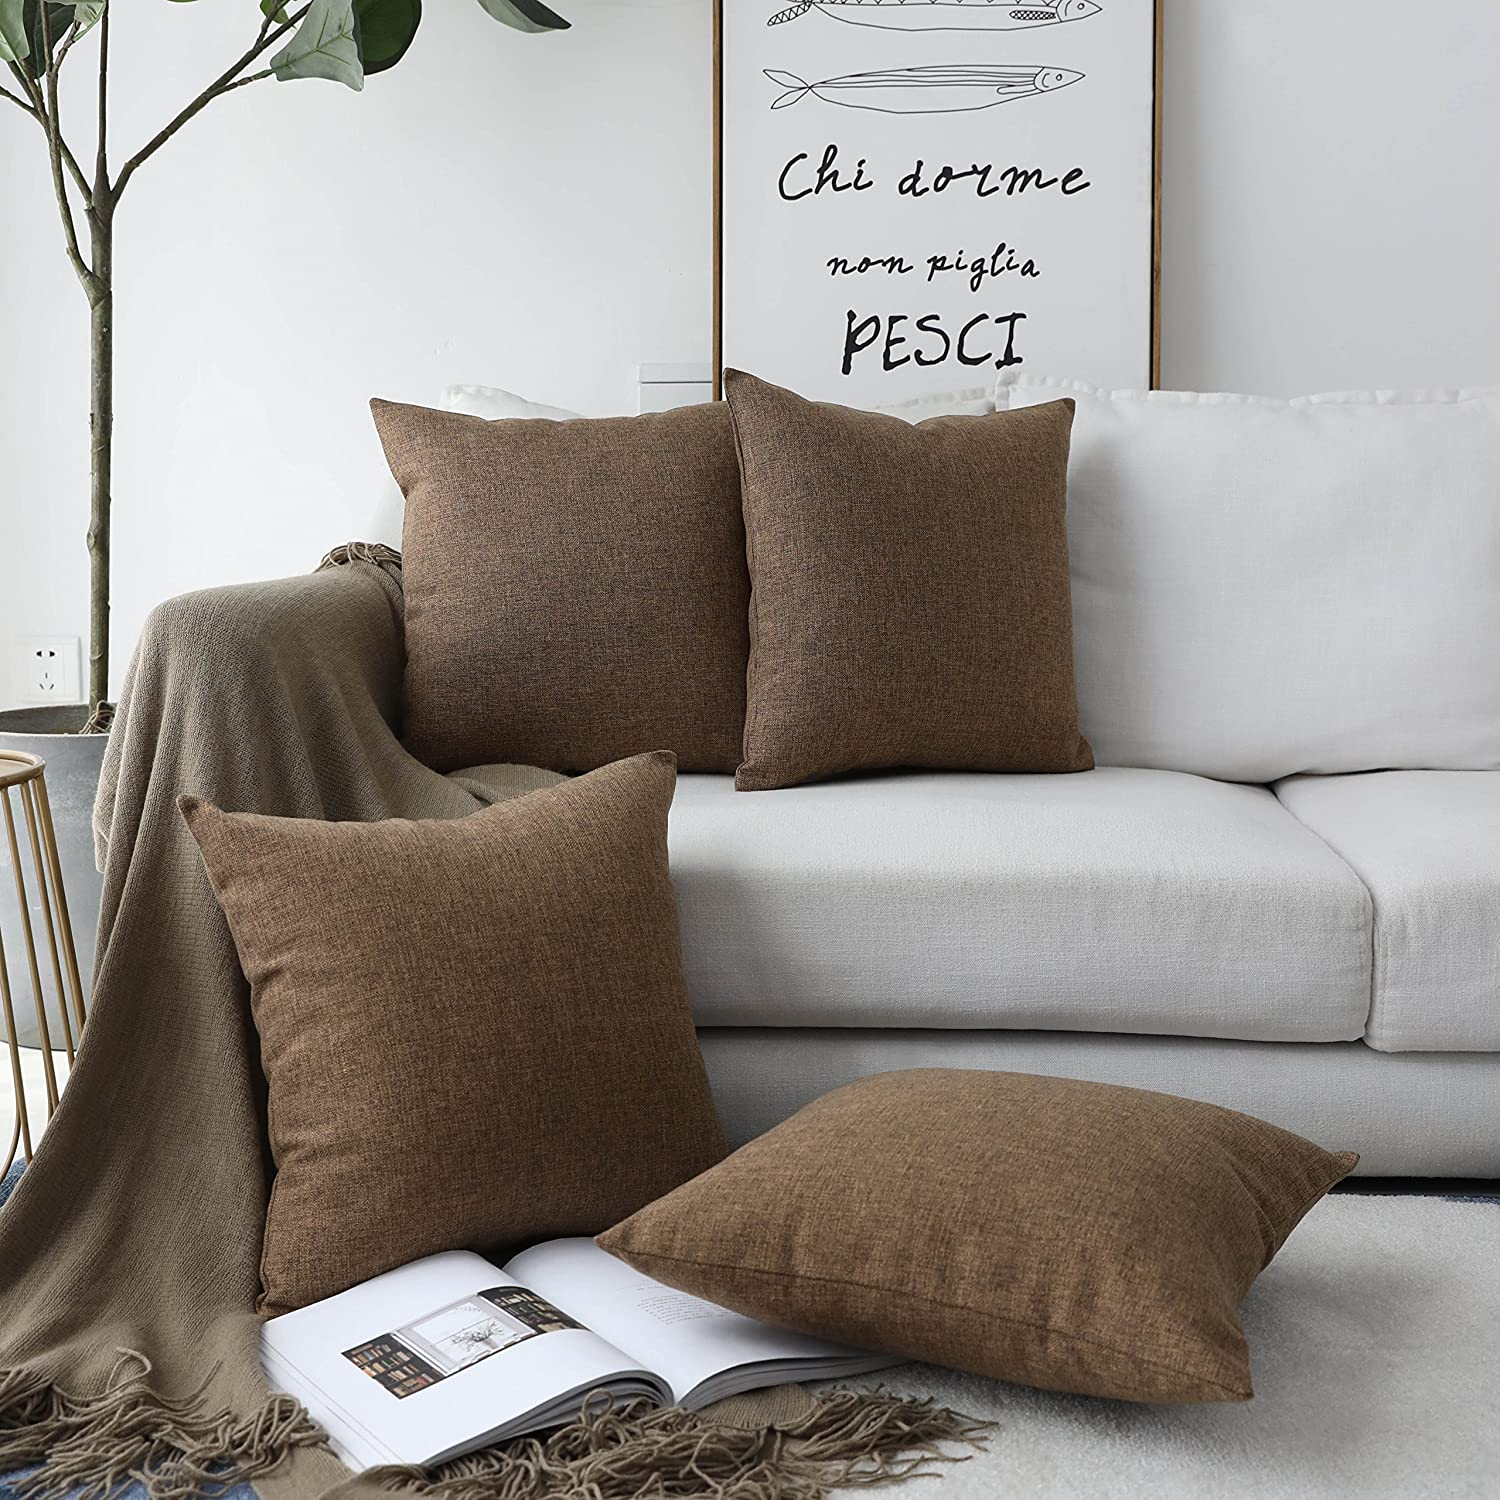 Home Brilliant Decor Burlap Lined Linen Square Throw Pillowcase Cushion Covers for Bench, 4 Pack, 18x18(45cm)